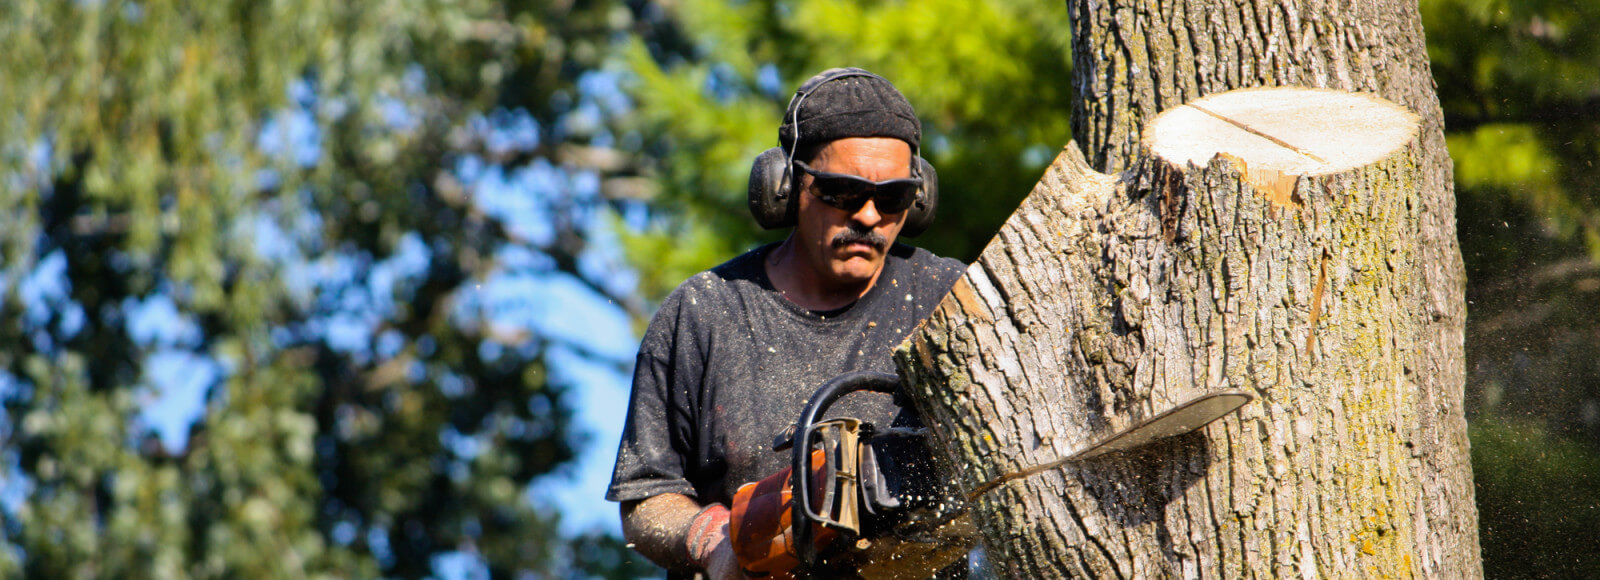 Man with a chainsaw cutting through a tree on Long Island